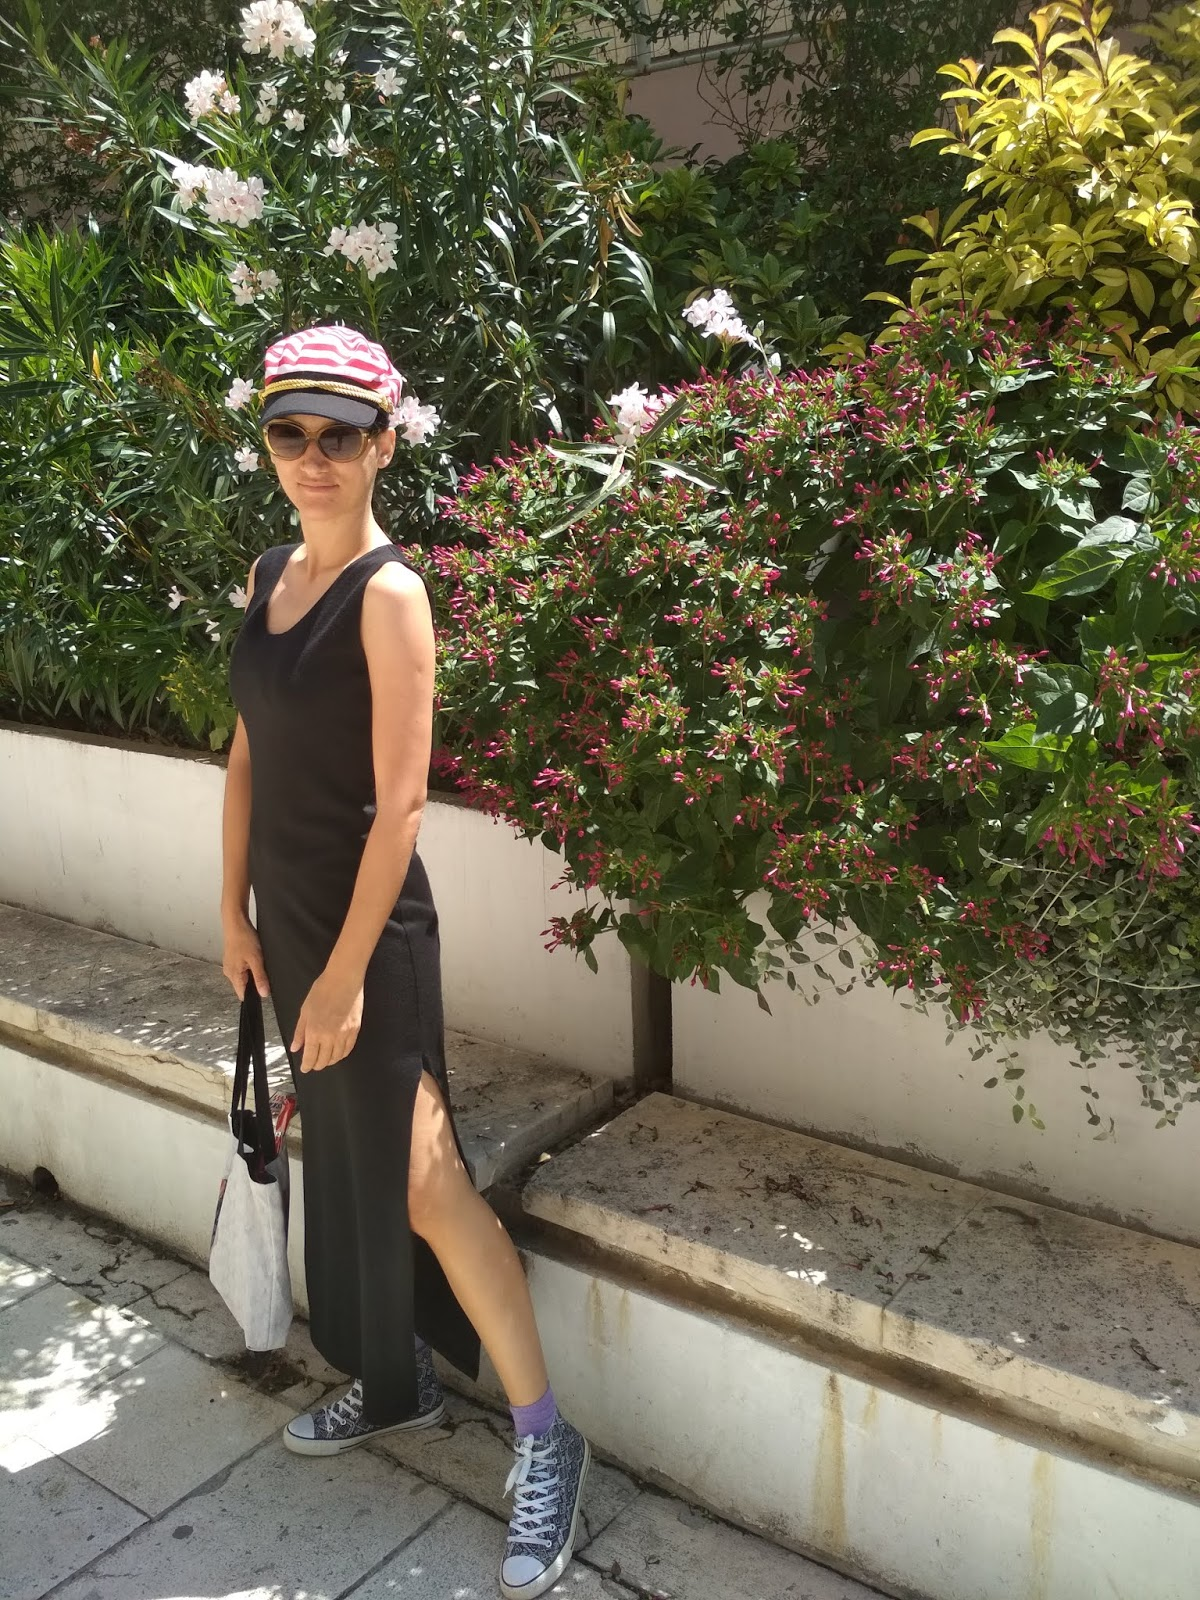 How to Wear a Black Maxi Dress in Summer / Summer Style Tips / Strolling Split 3 Outfit Proposal